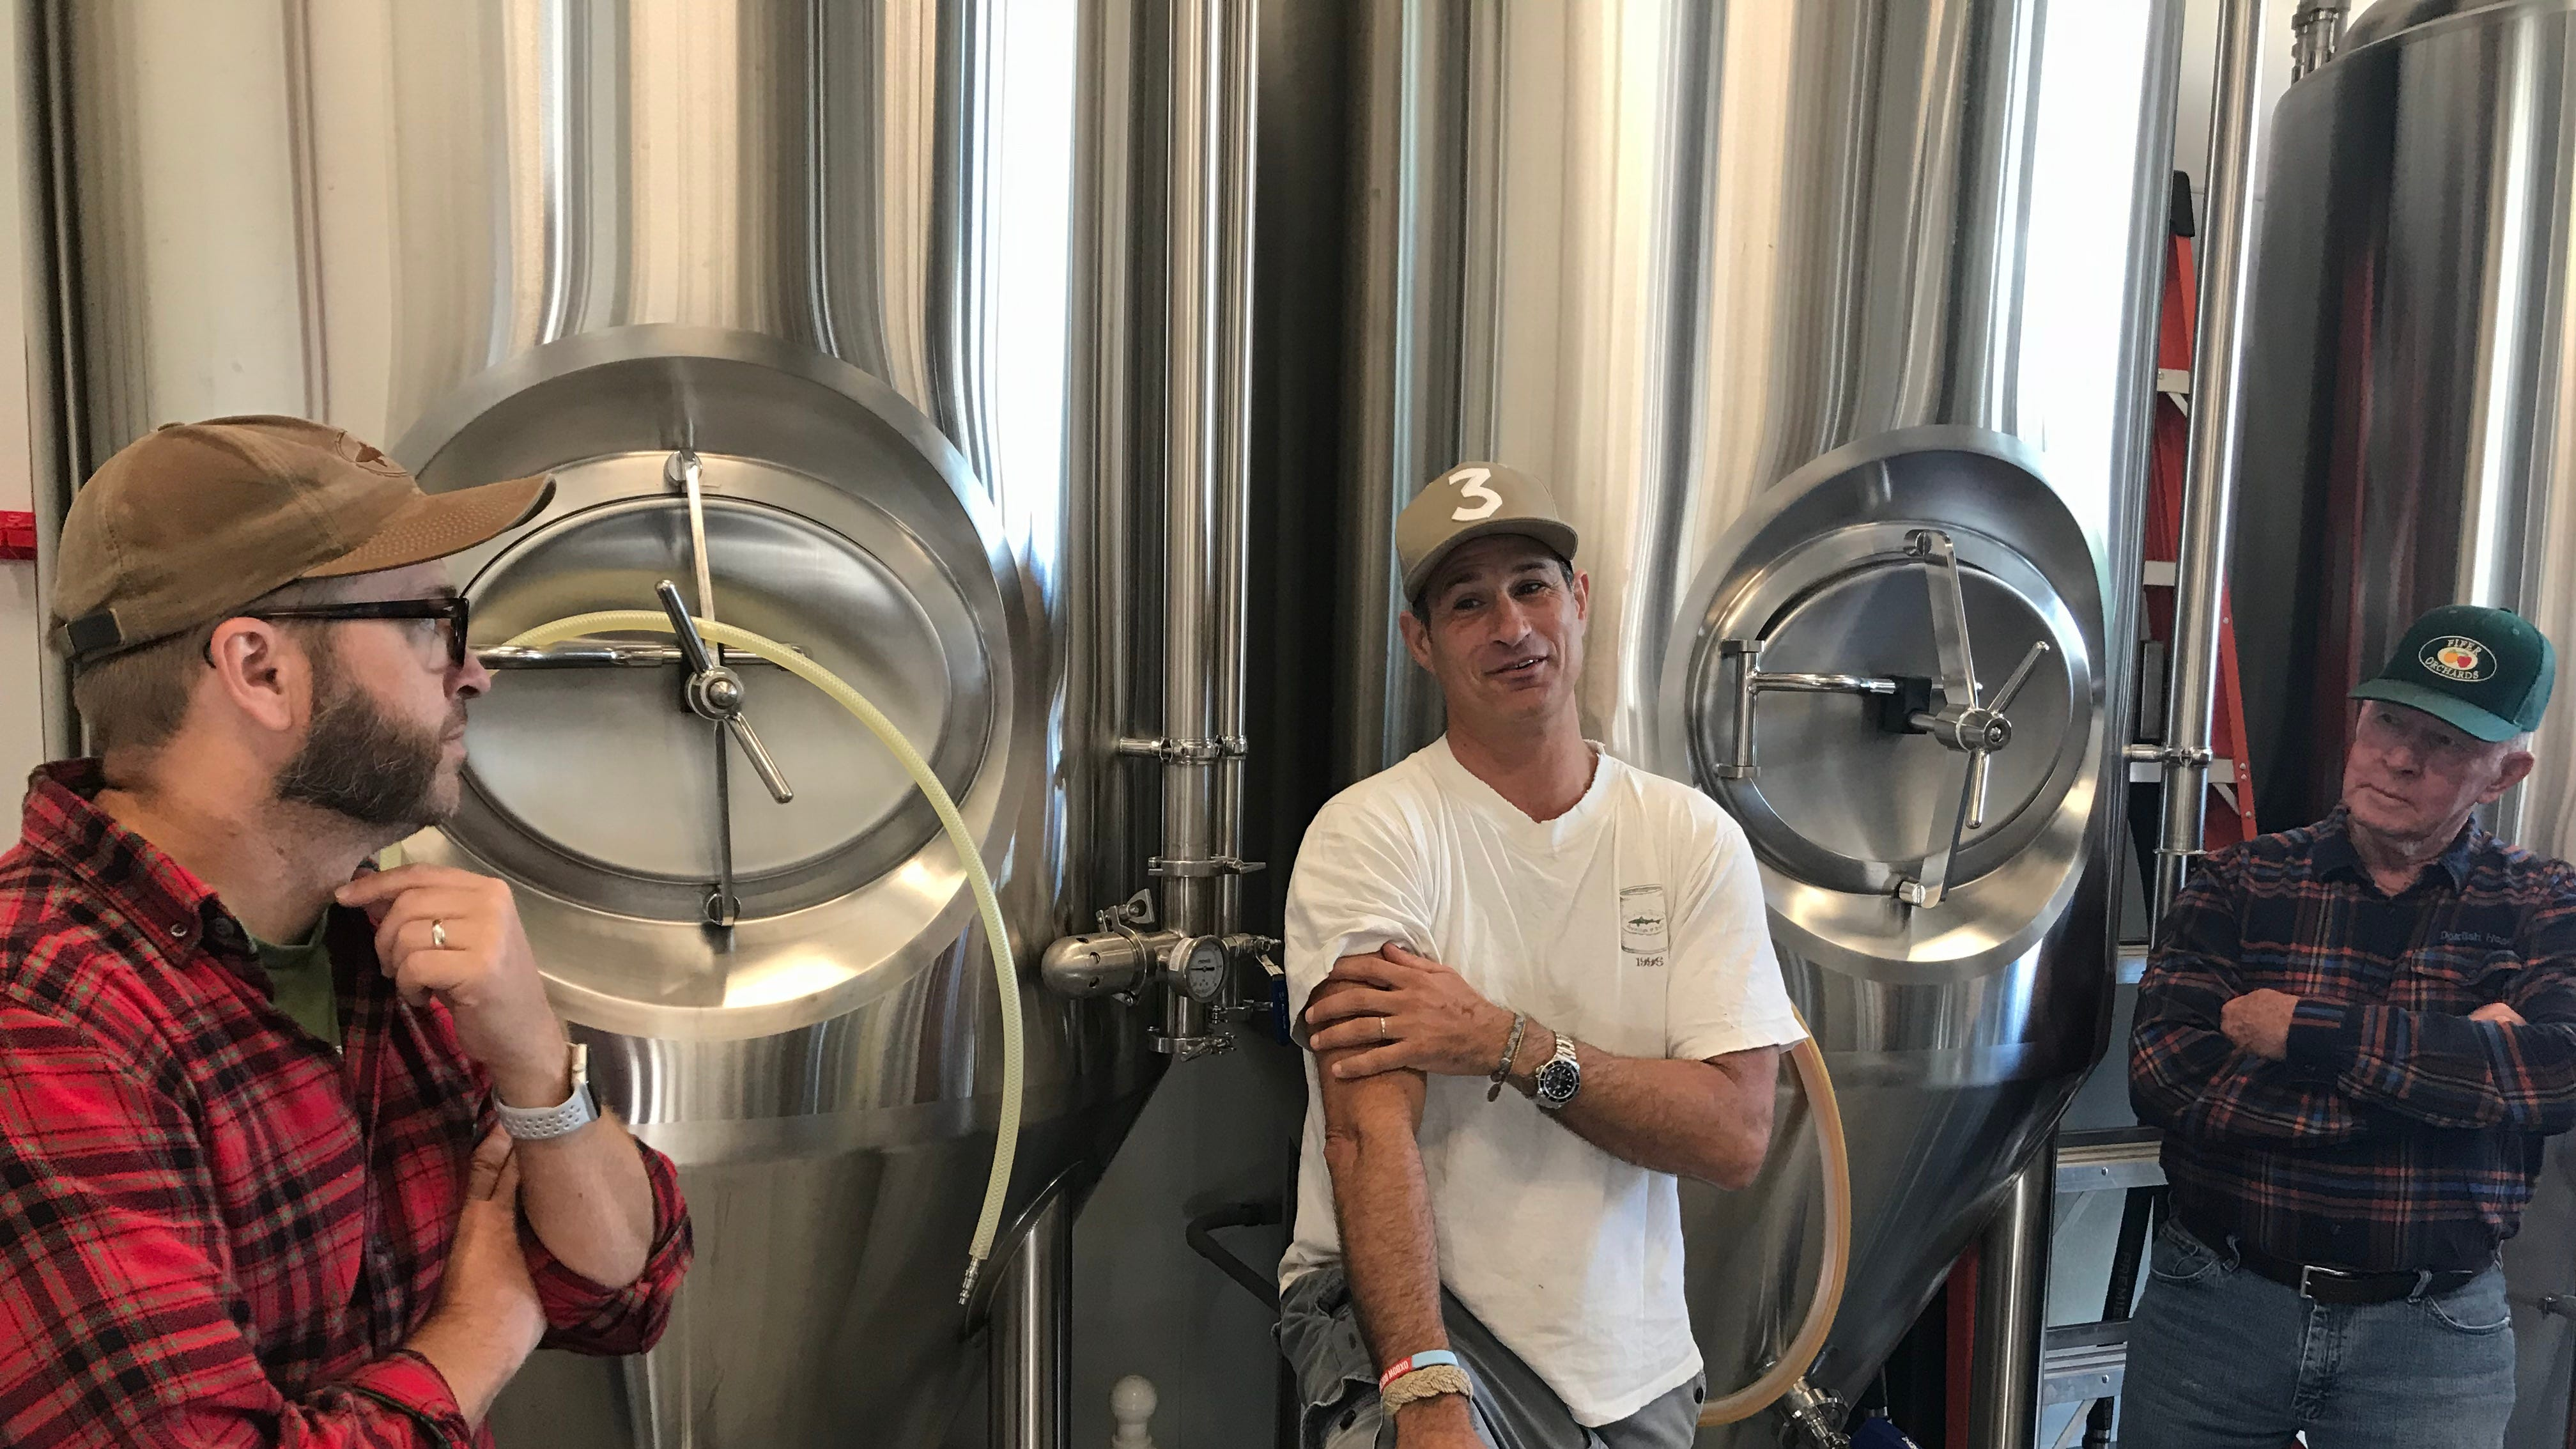 Bryan Selders (left), Sam Calagione (middle) and John Carter (right) discuss the apple cider doughtnut inspired beer Dogfish Head Craft Brewery and Dewey Beer Co. are creating in Rehoboth Beach on Oct. 18, 2018.